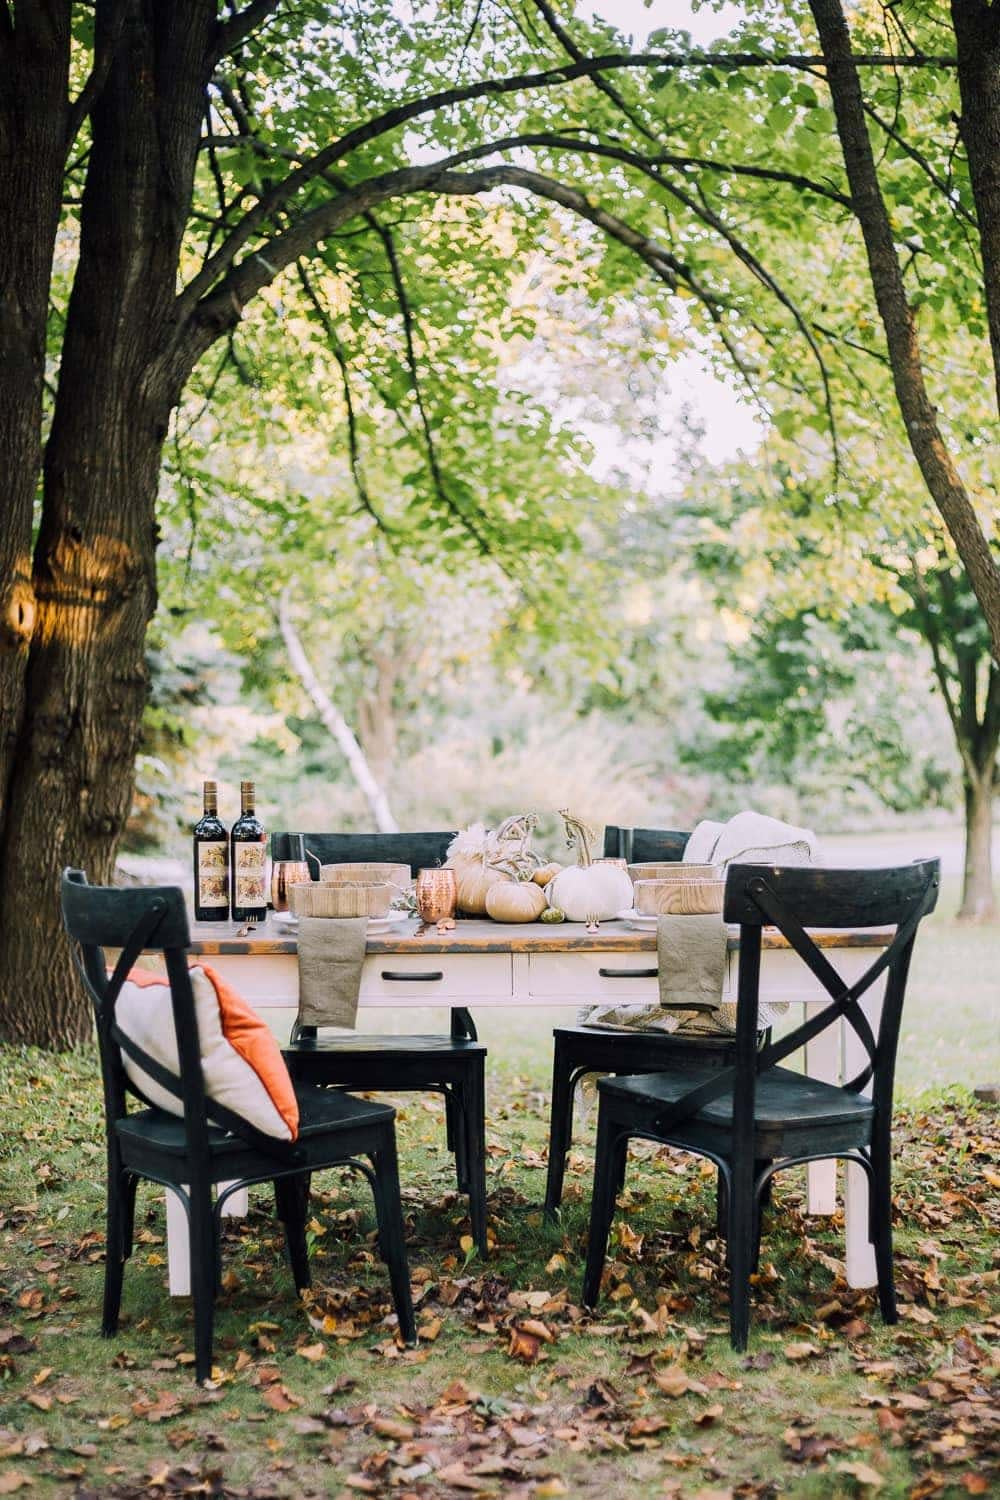 Thanksgiving table centerpiece outdoors in the park on a farmhouse table with black chairs